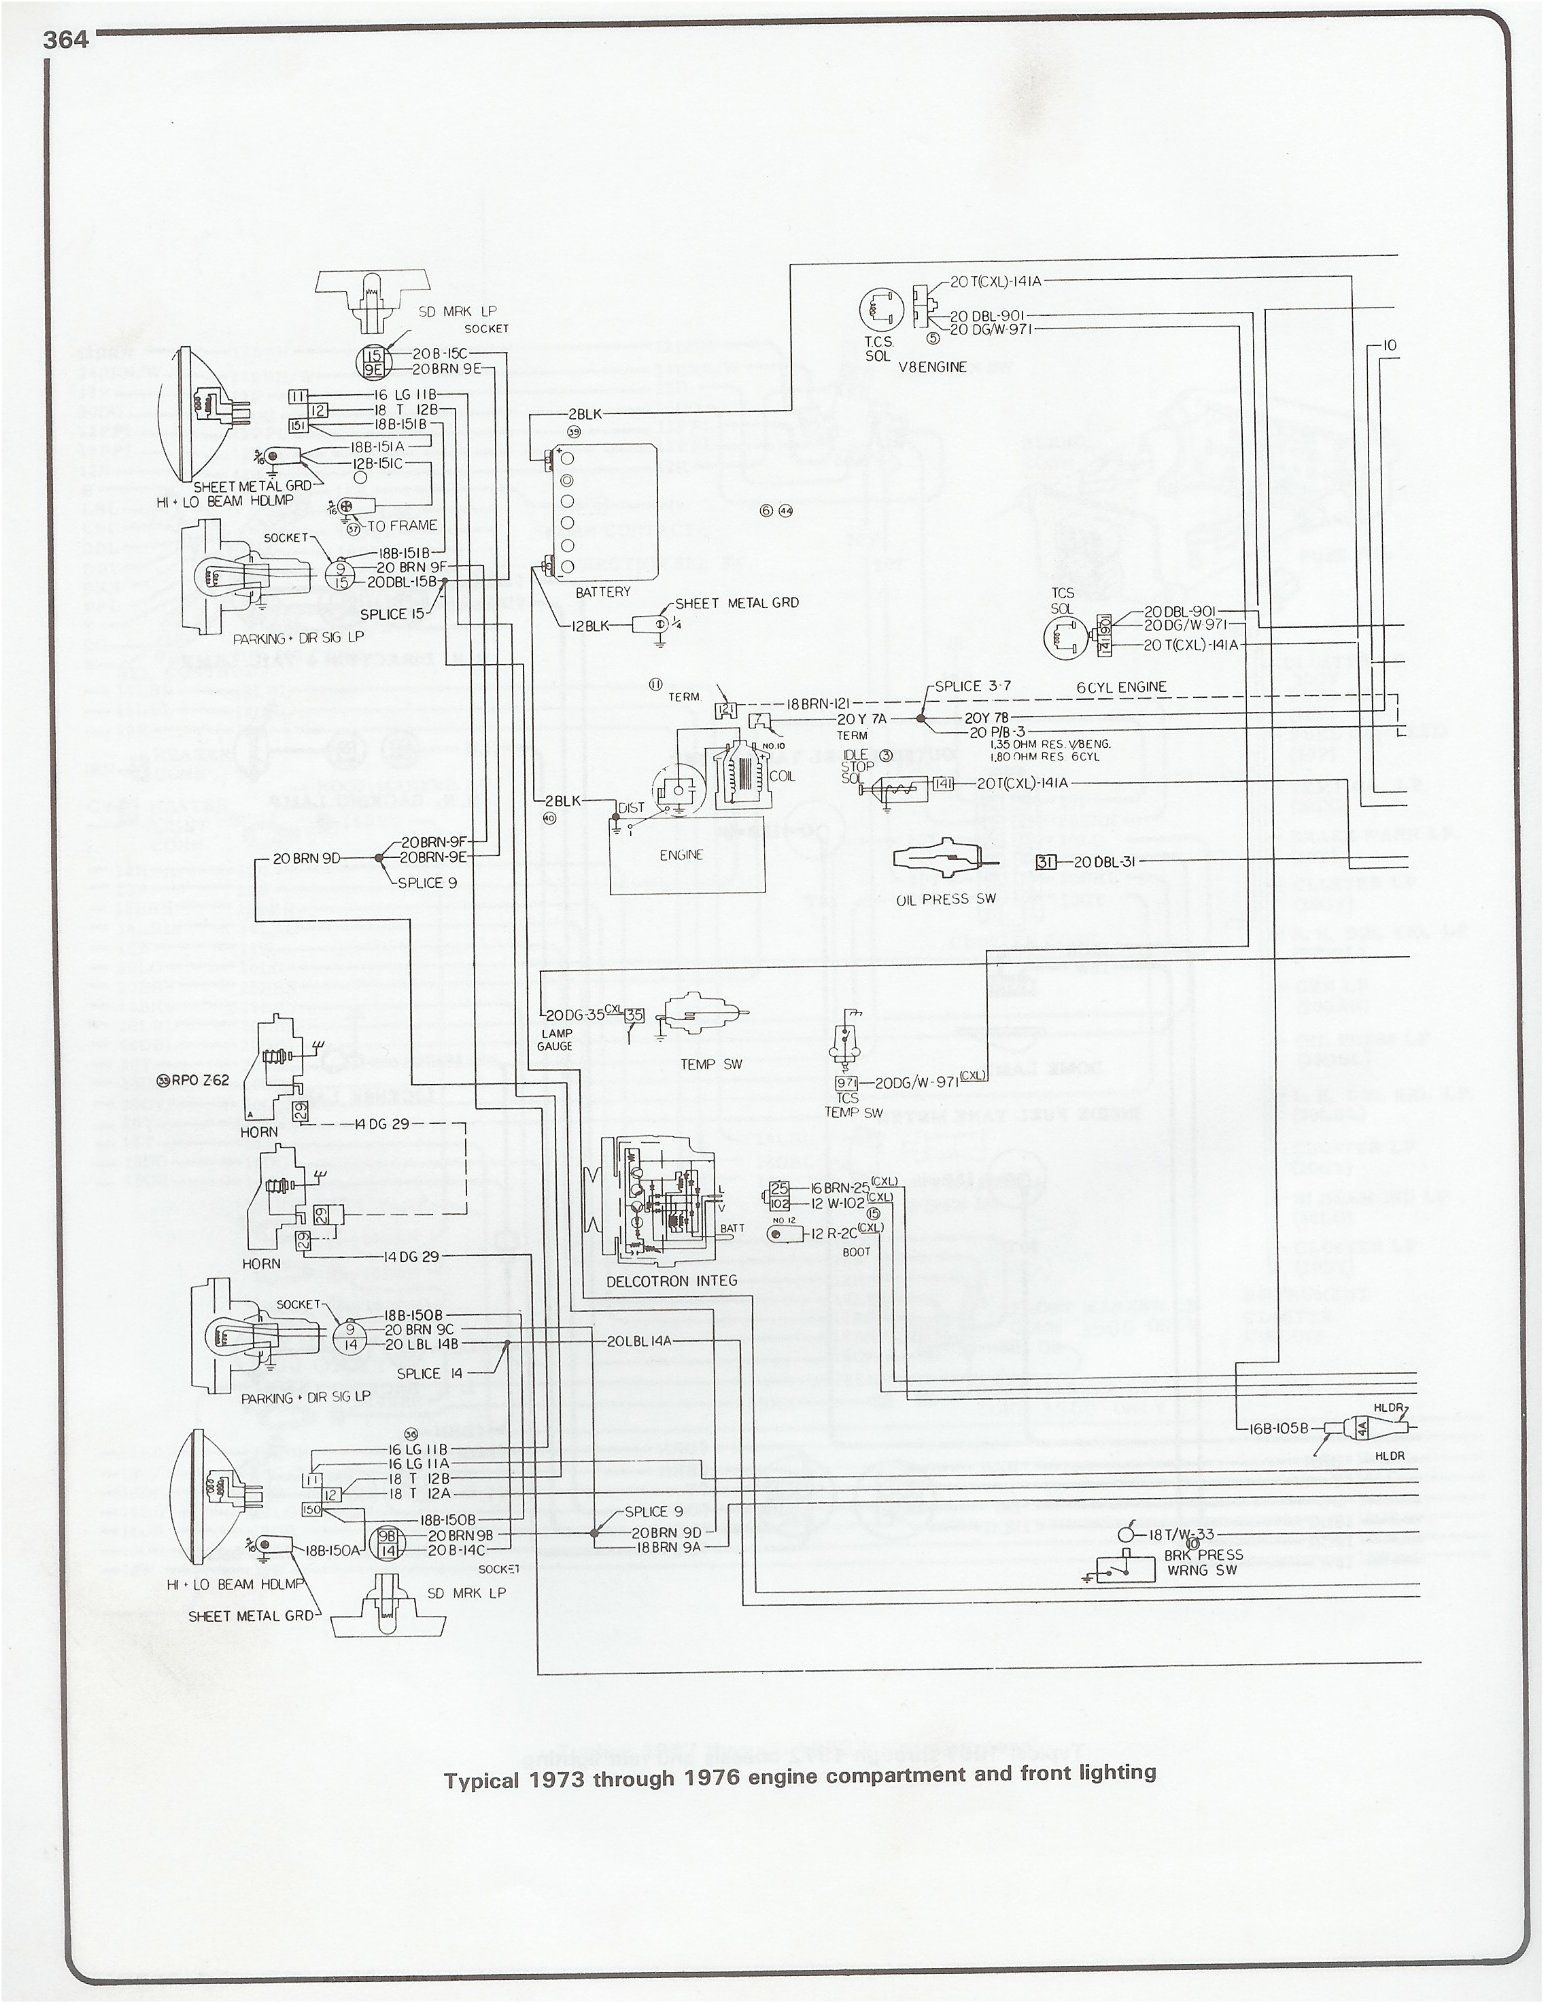 hight resolution of 1976 gmc fuse panel diagram wiring diagram used1976 gmc silverado fuse box wiring diagram new 1976